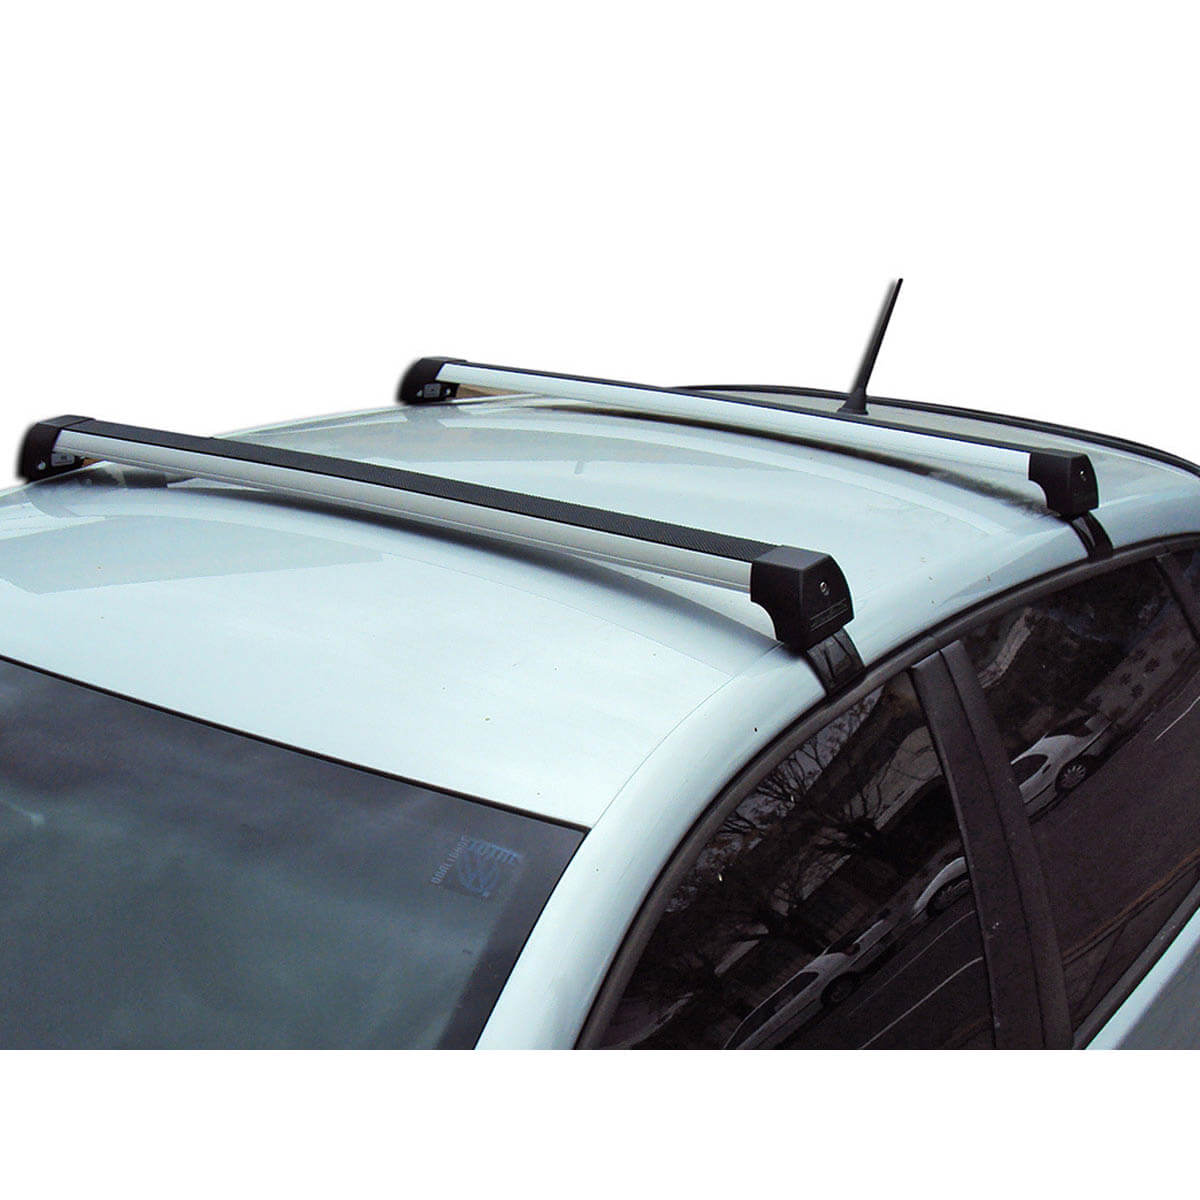 Rack de teto Livina 2010 a 2015 Long Life Sports anodizado